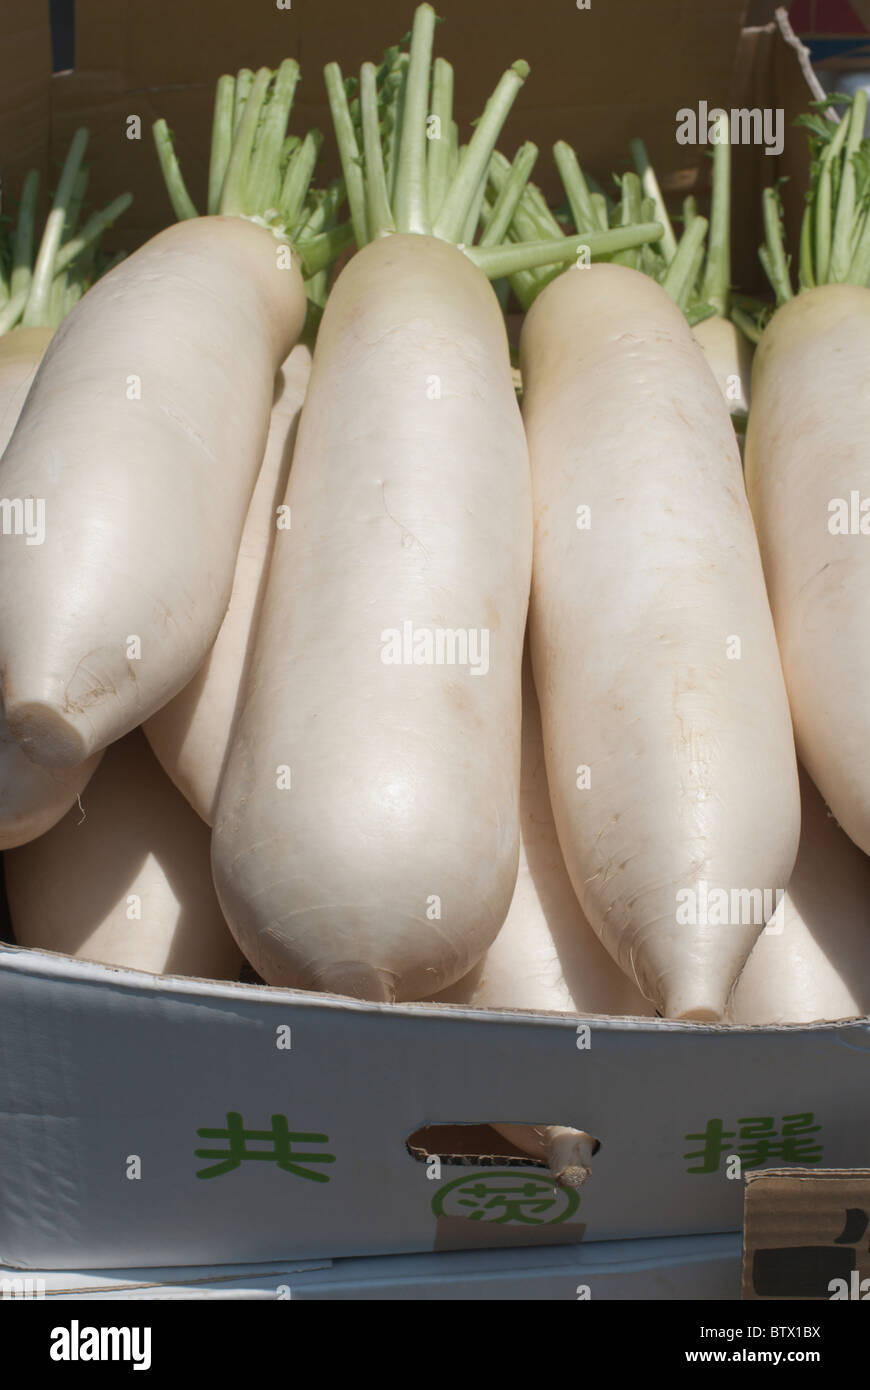 Daikon, large white Japanese radish, a staple of the county's cooking, for sale at the Ameyayokocho Market. - Stock Image